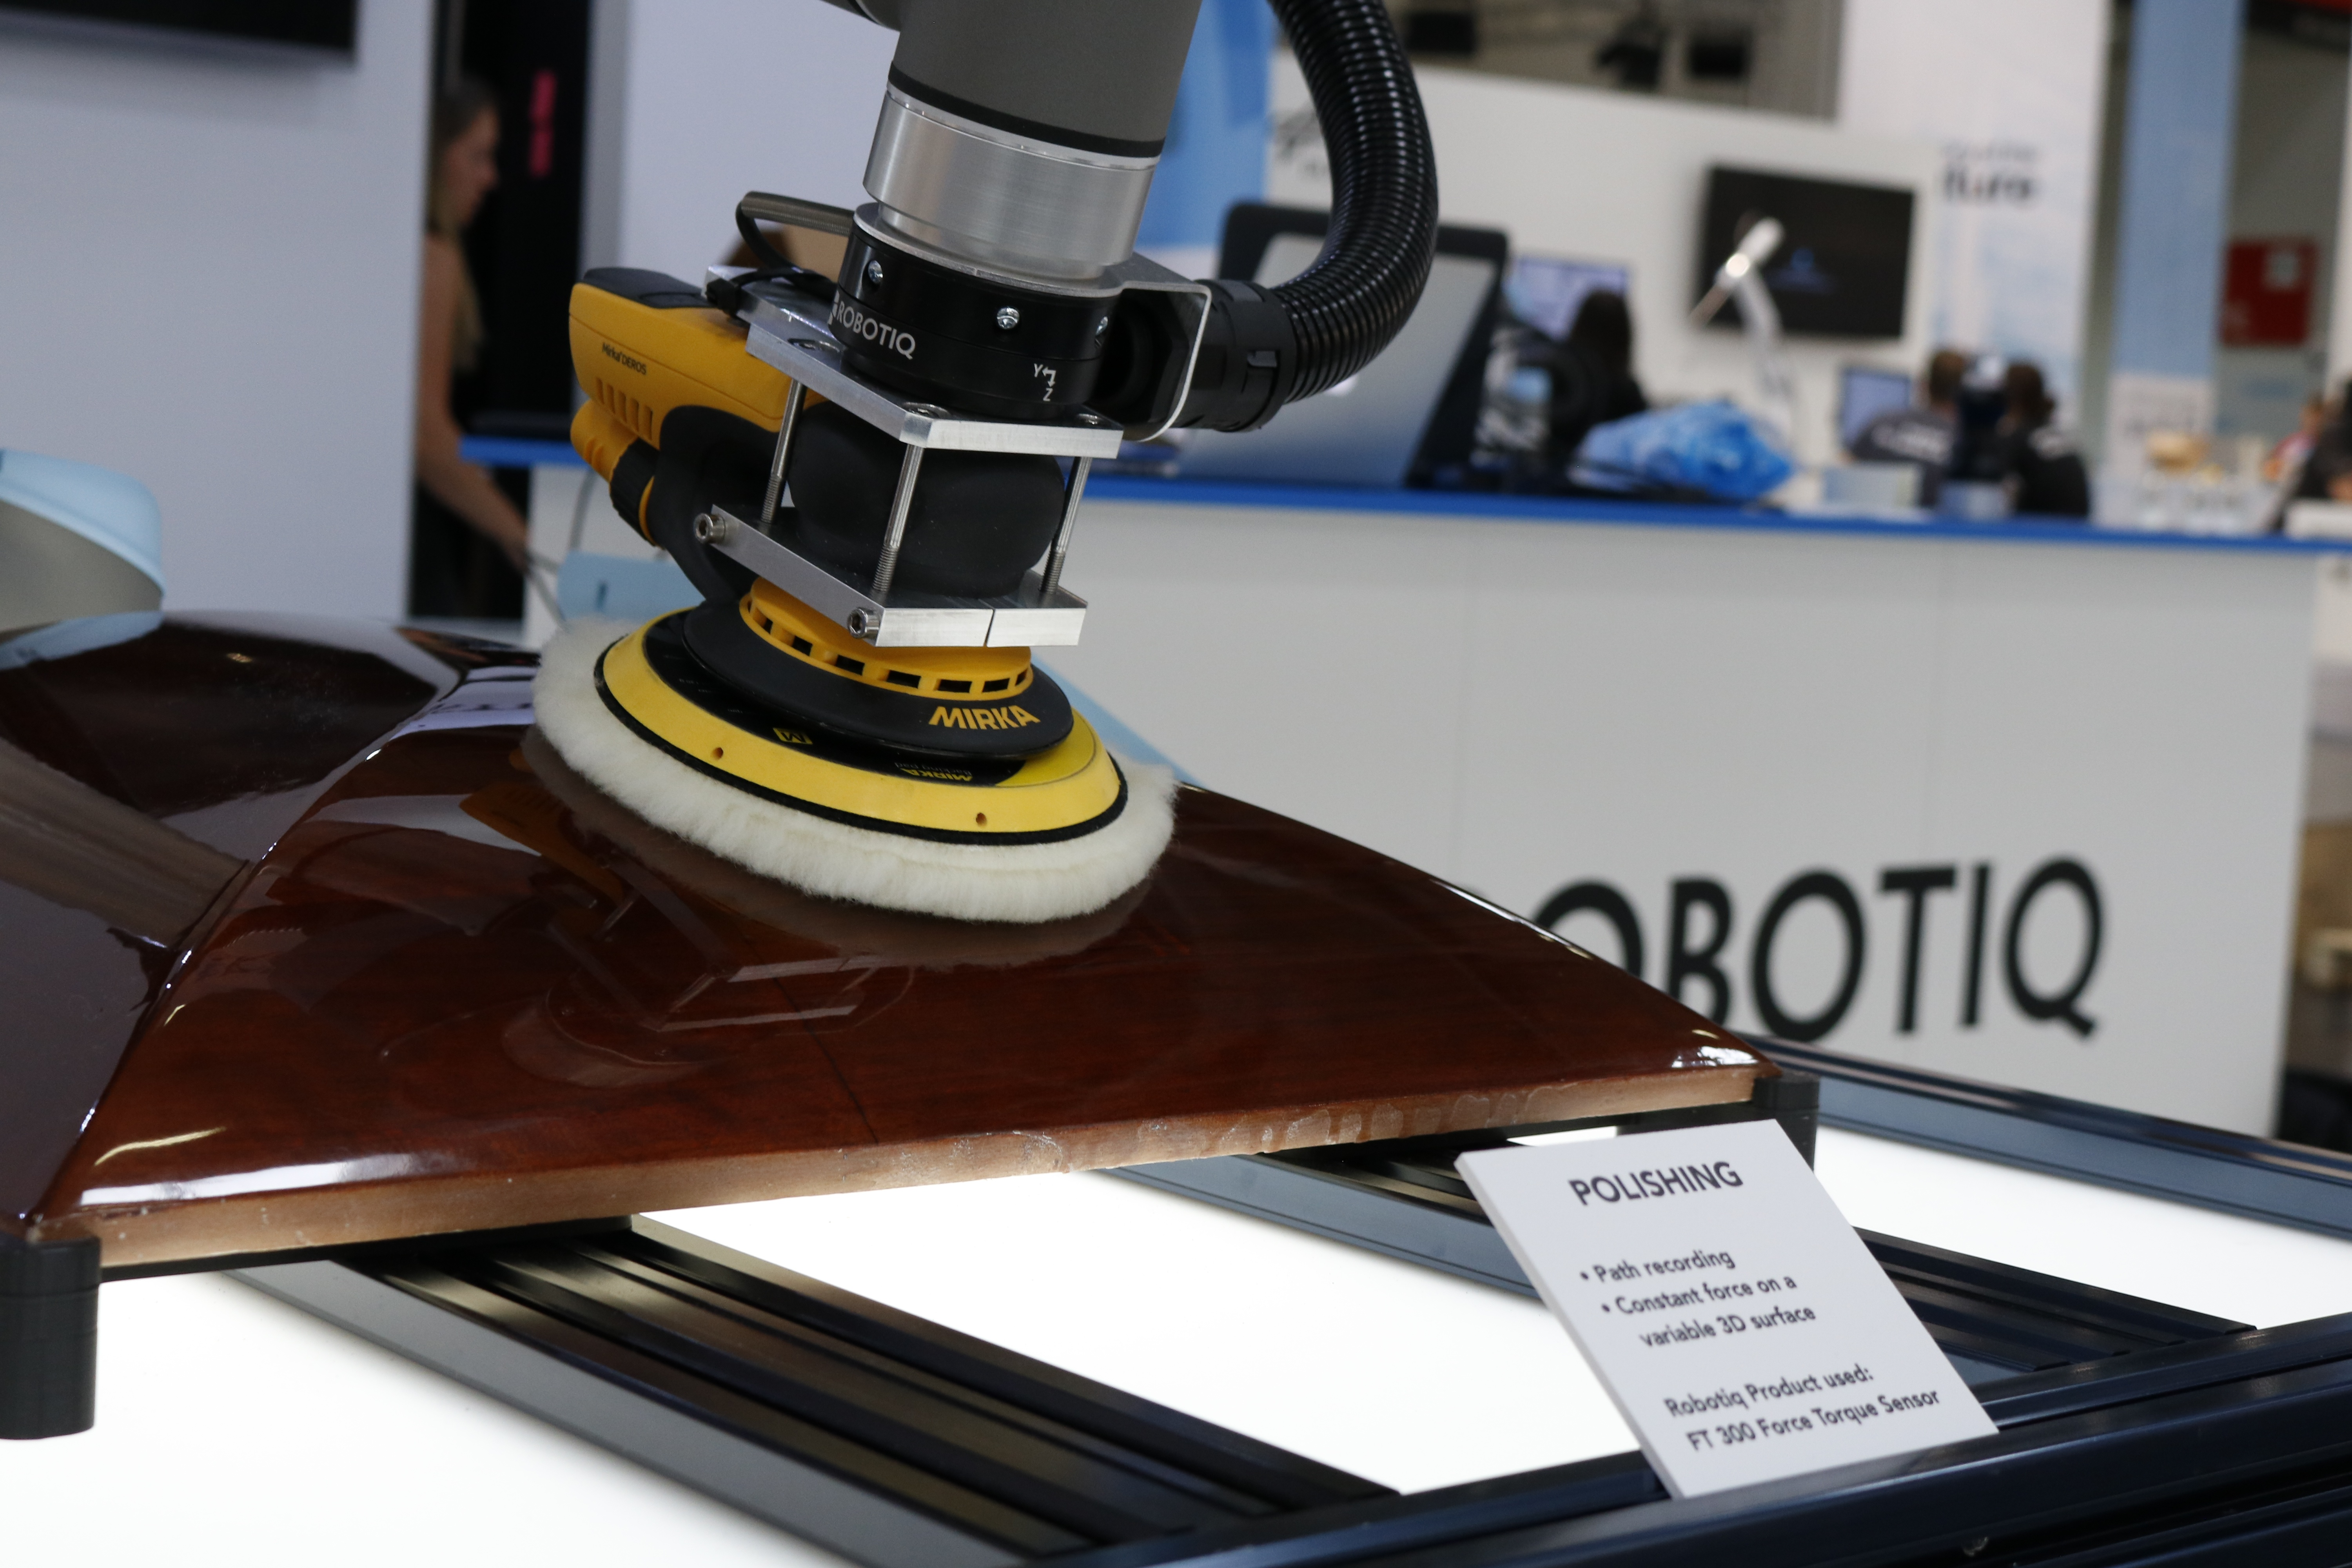 Get Insights from the Robotiq Booth at automatica!